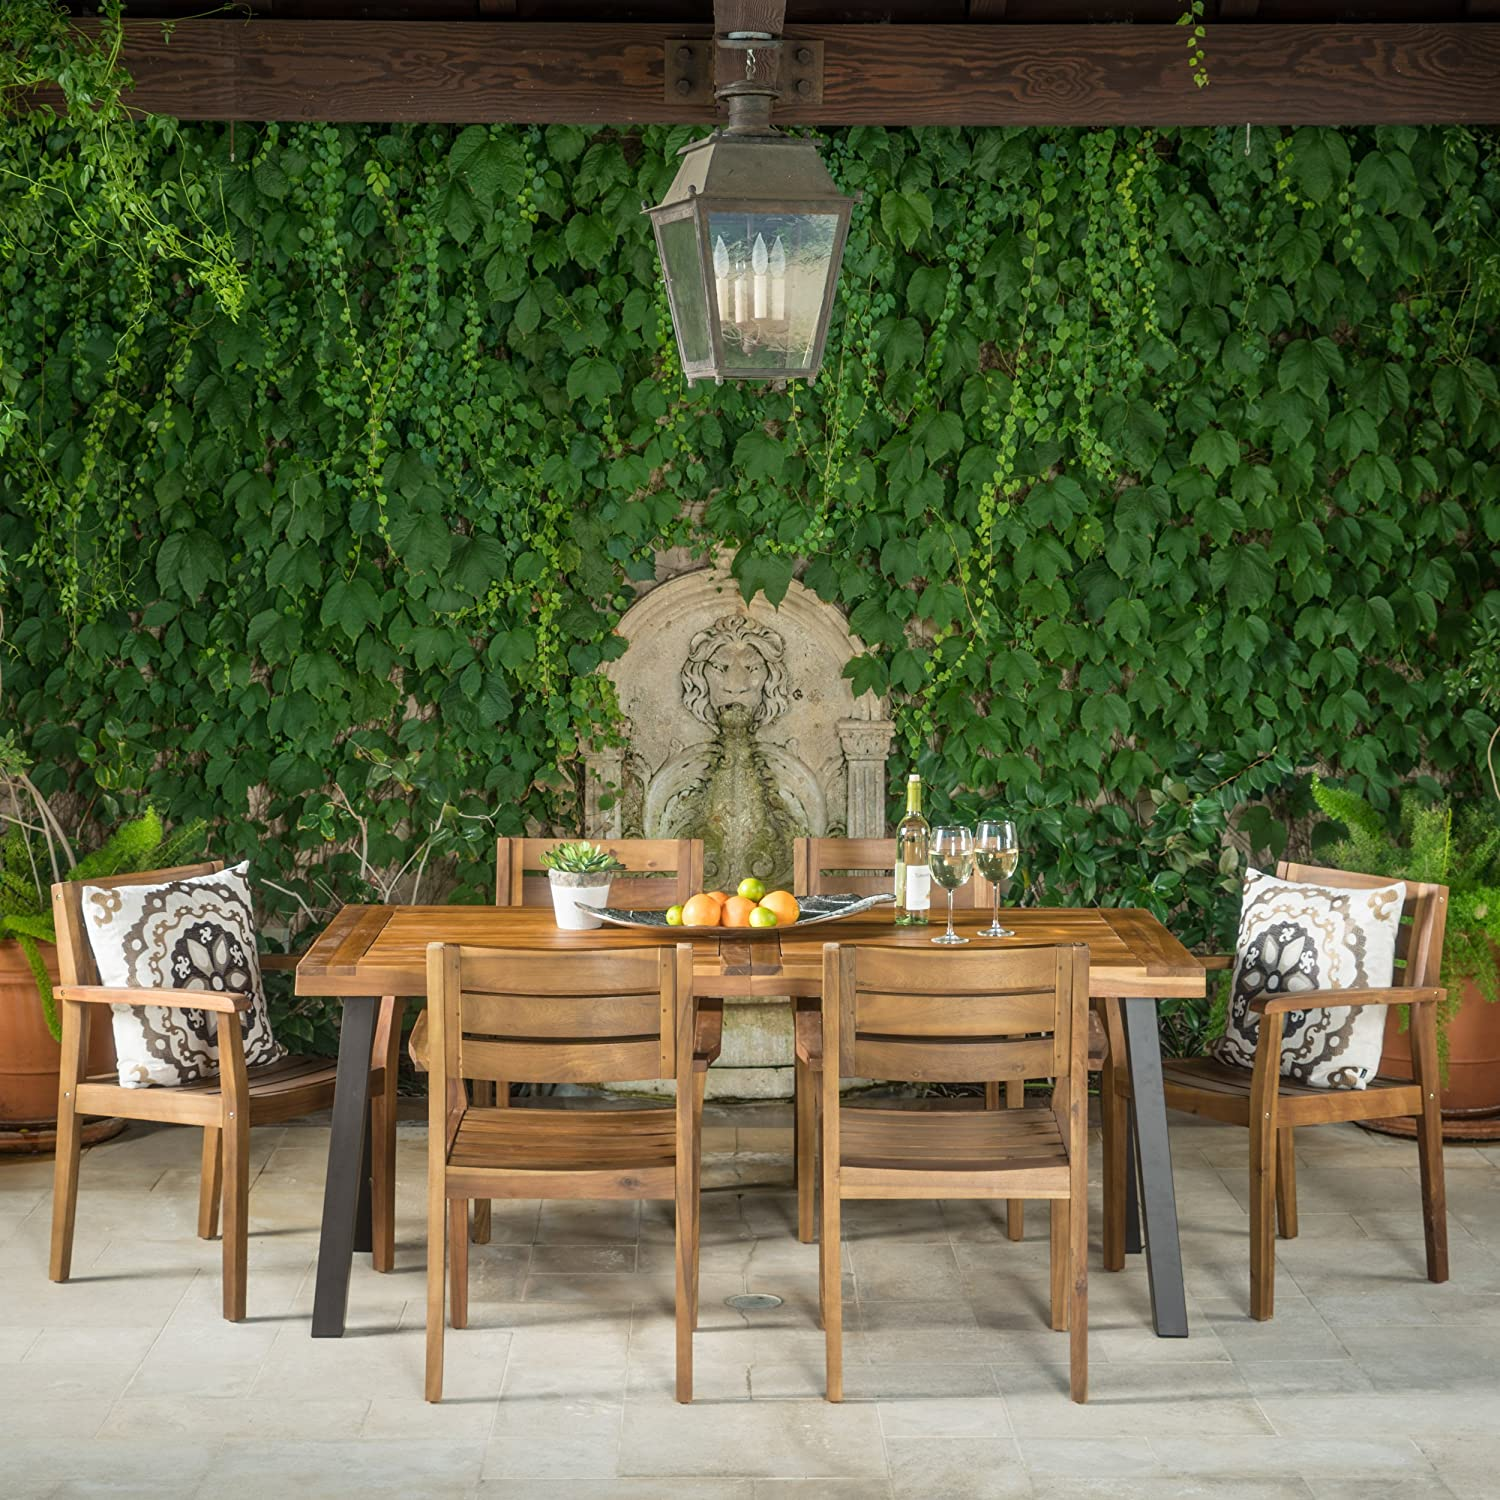 Avalon | 7 Piece Acacia Wood Dining Set with Rustic Metal Accents | Perfect for Patio | with Teak Finish